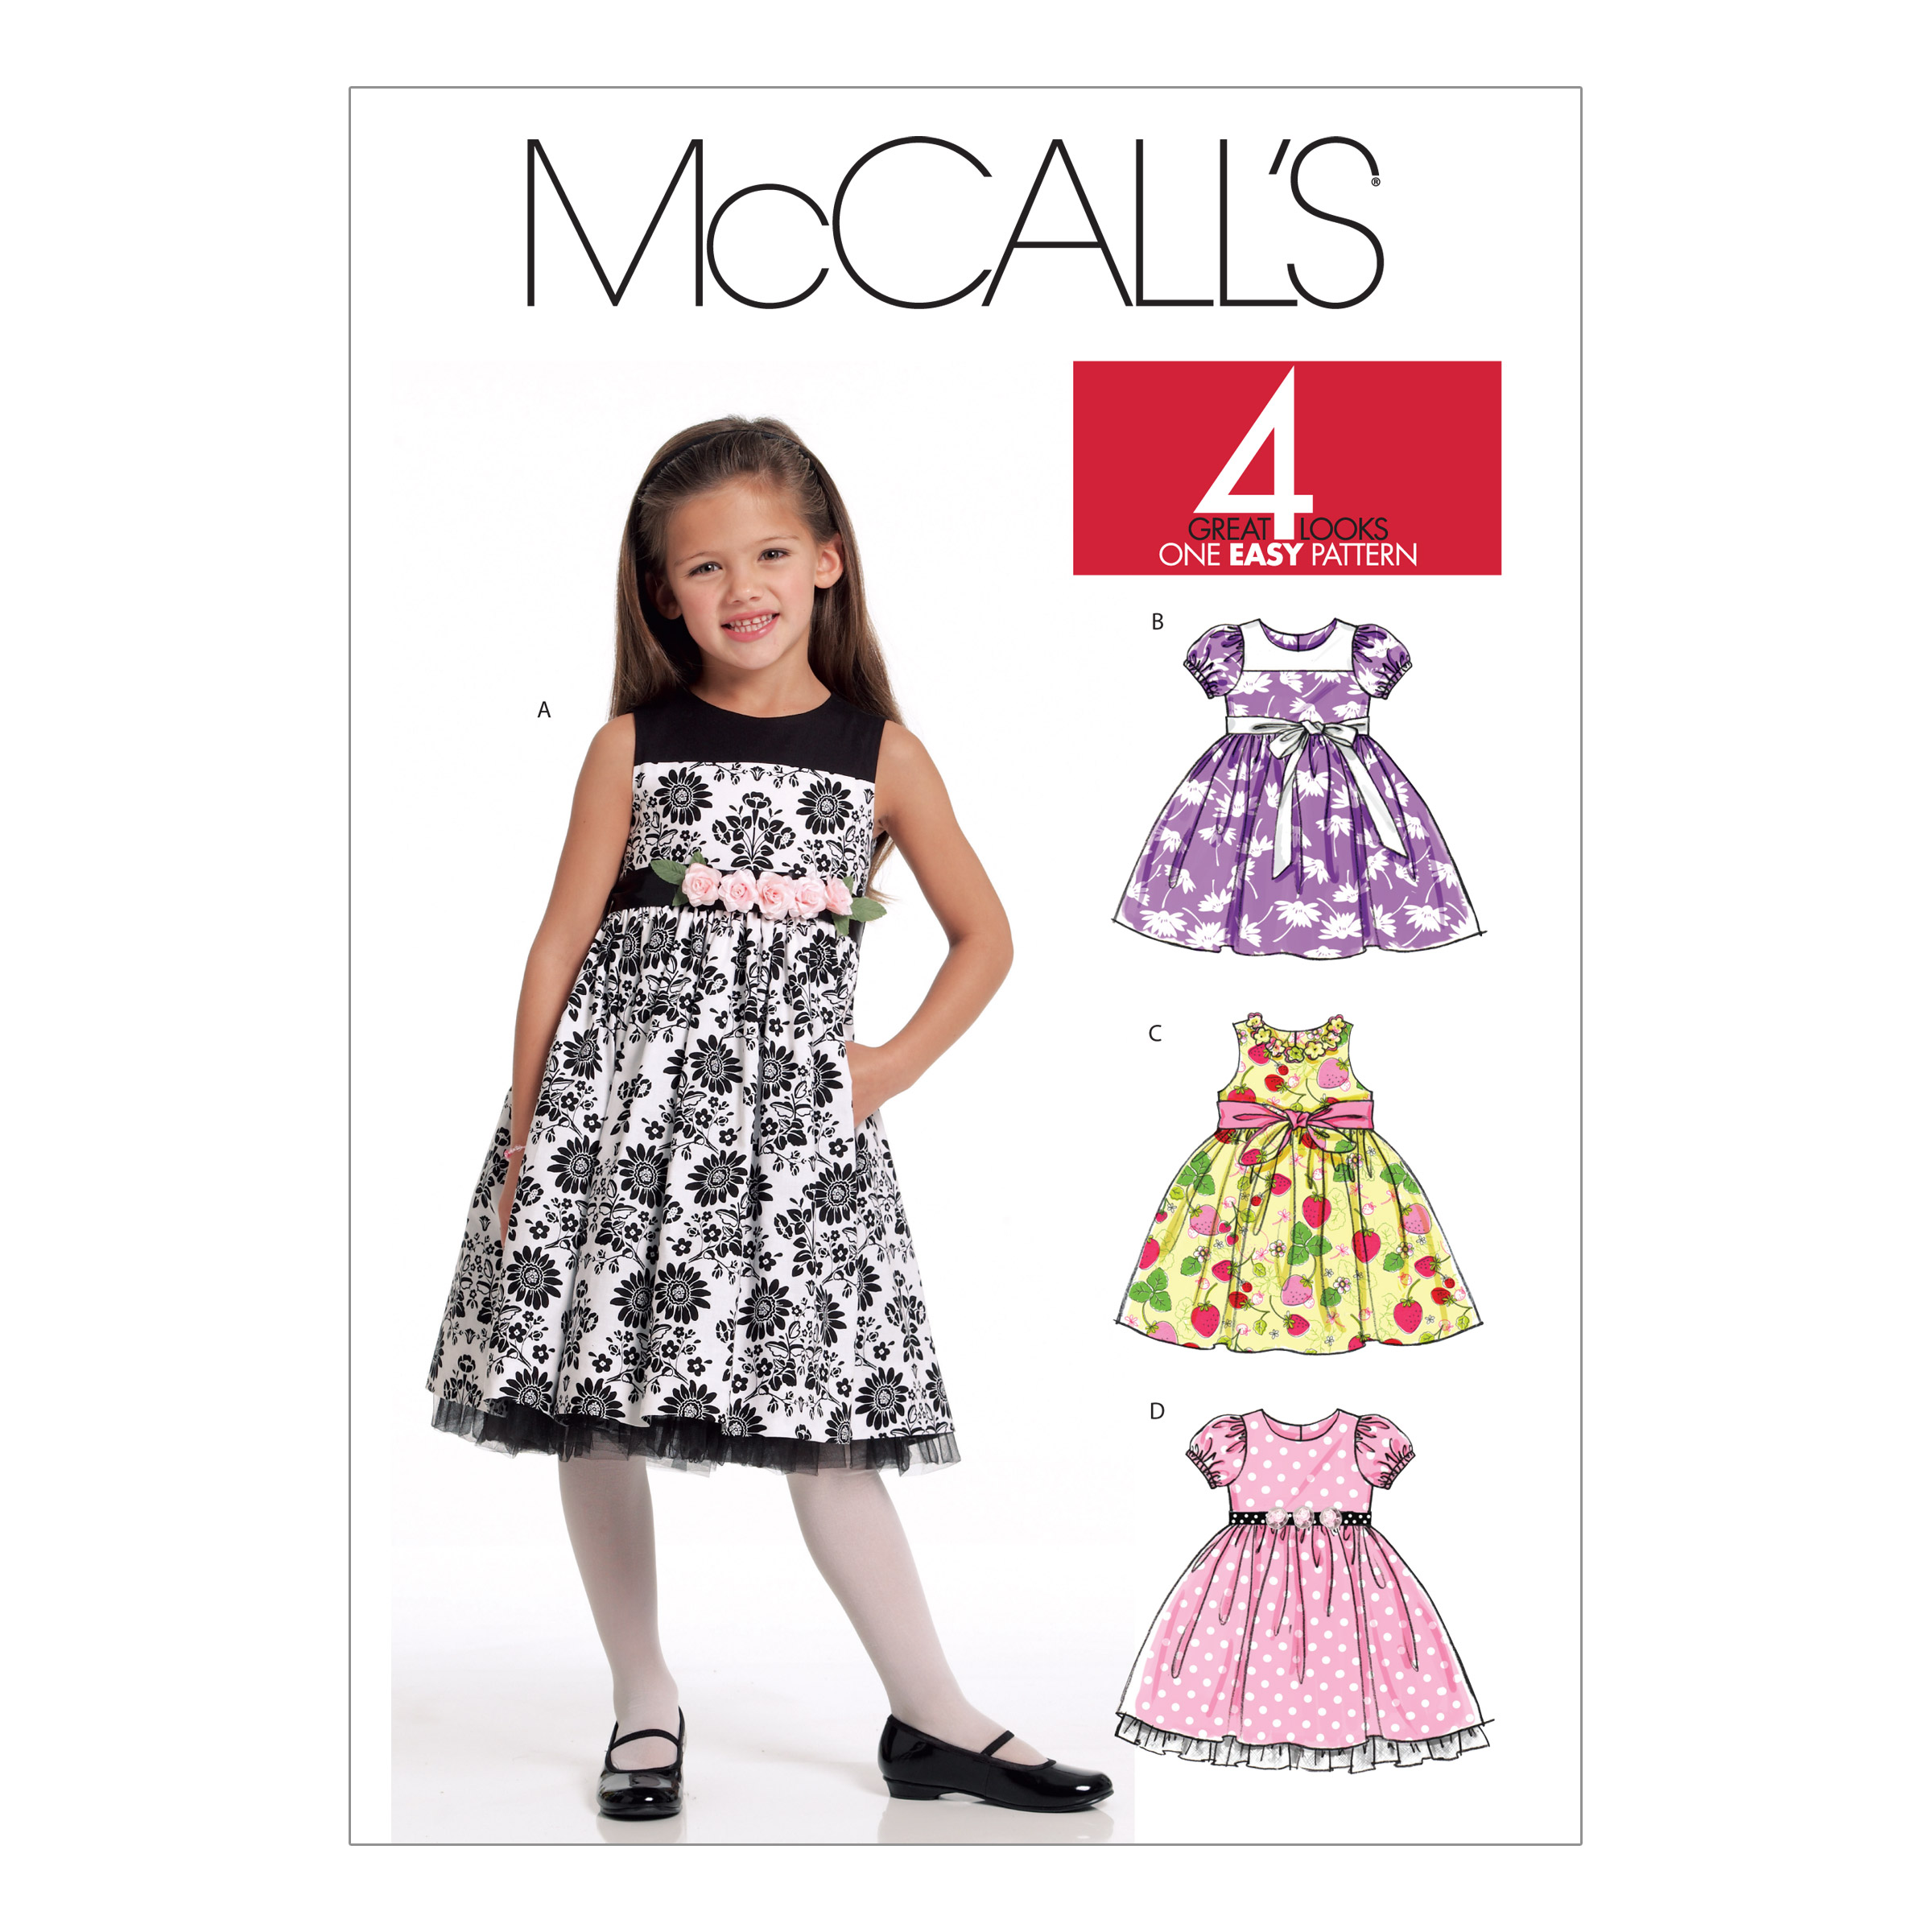 McCall's Children's/Girls' Lined Dresses Pattern M5793 Size CDD by Kwik Sew in USA